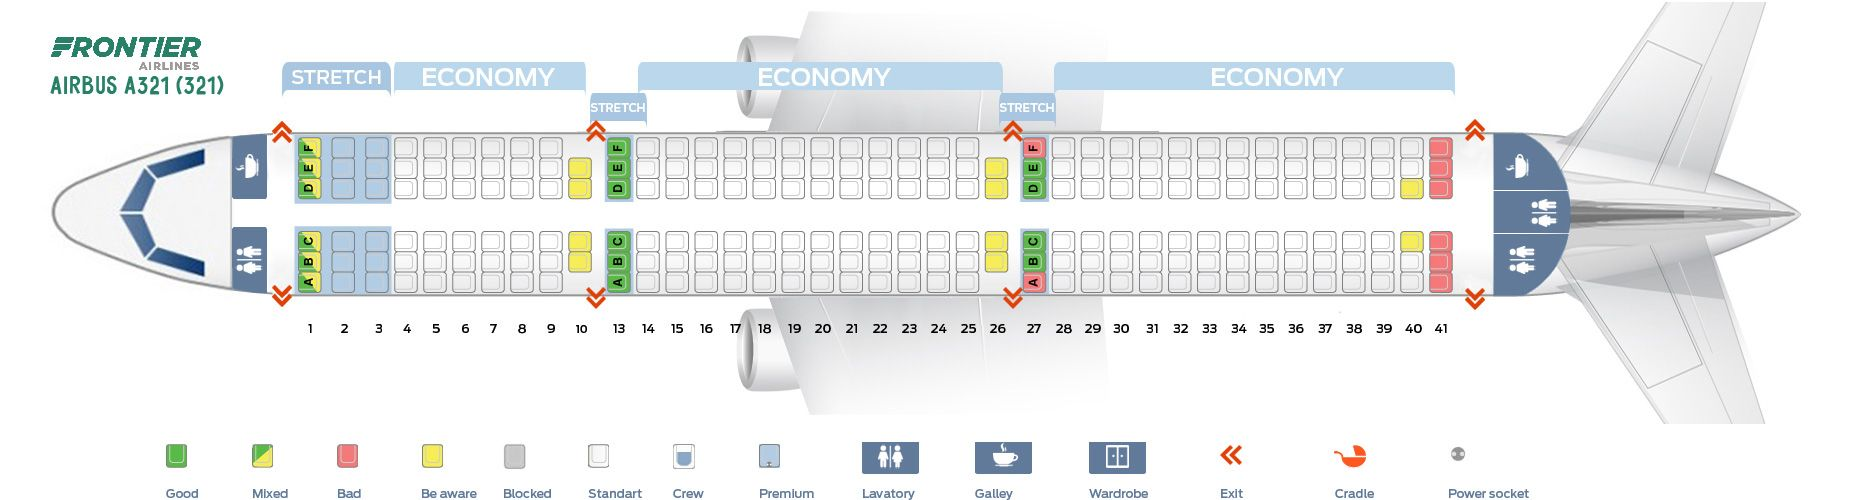 Seat Map And Seating Chart Frontier Airlines Airbus A321 200 321 Airbus Fleet Boeing